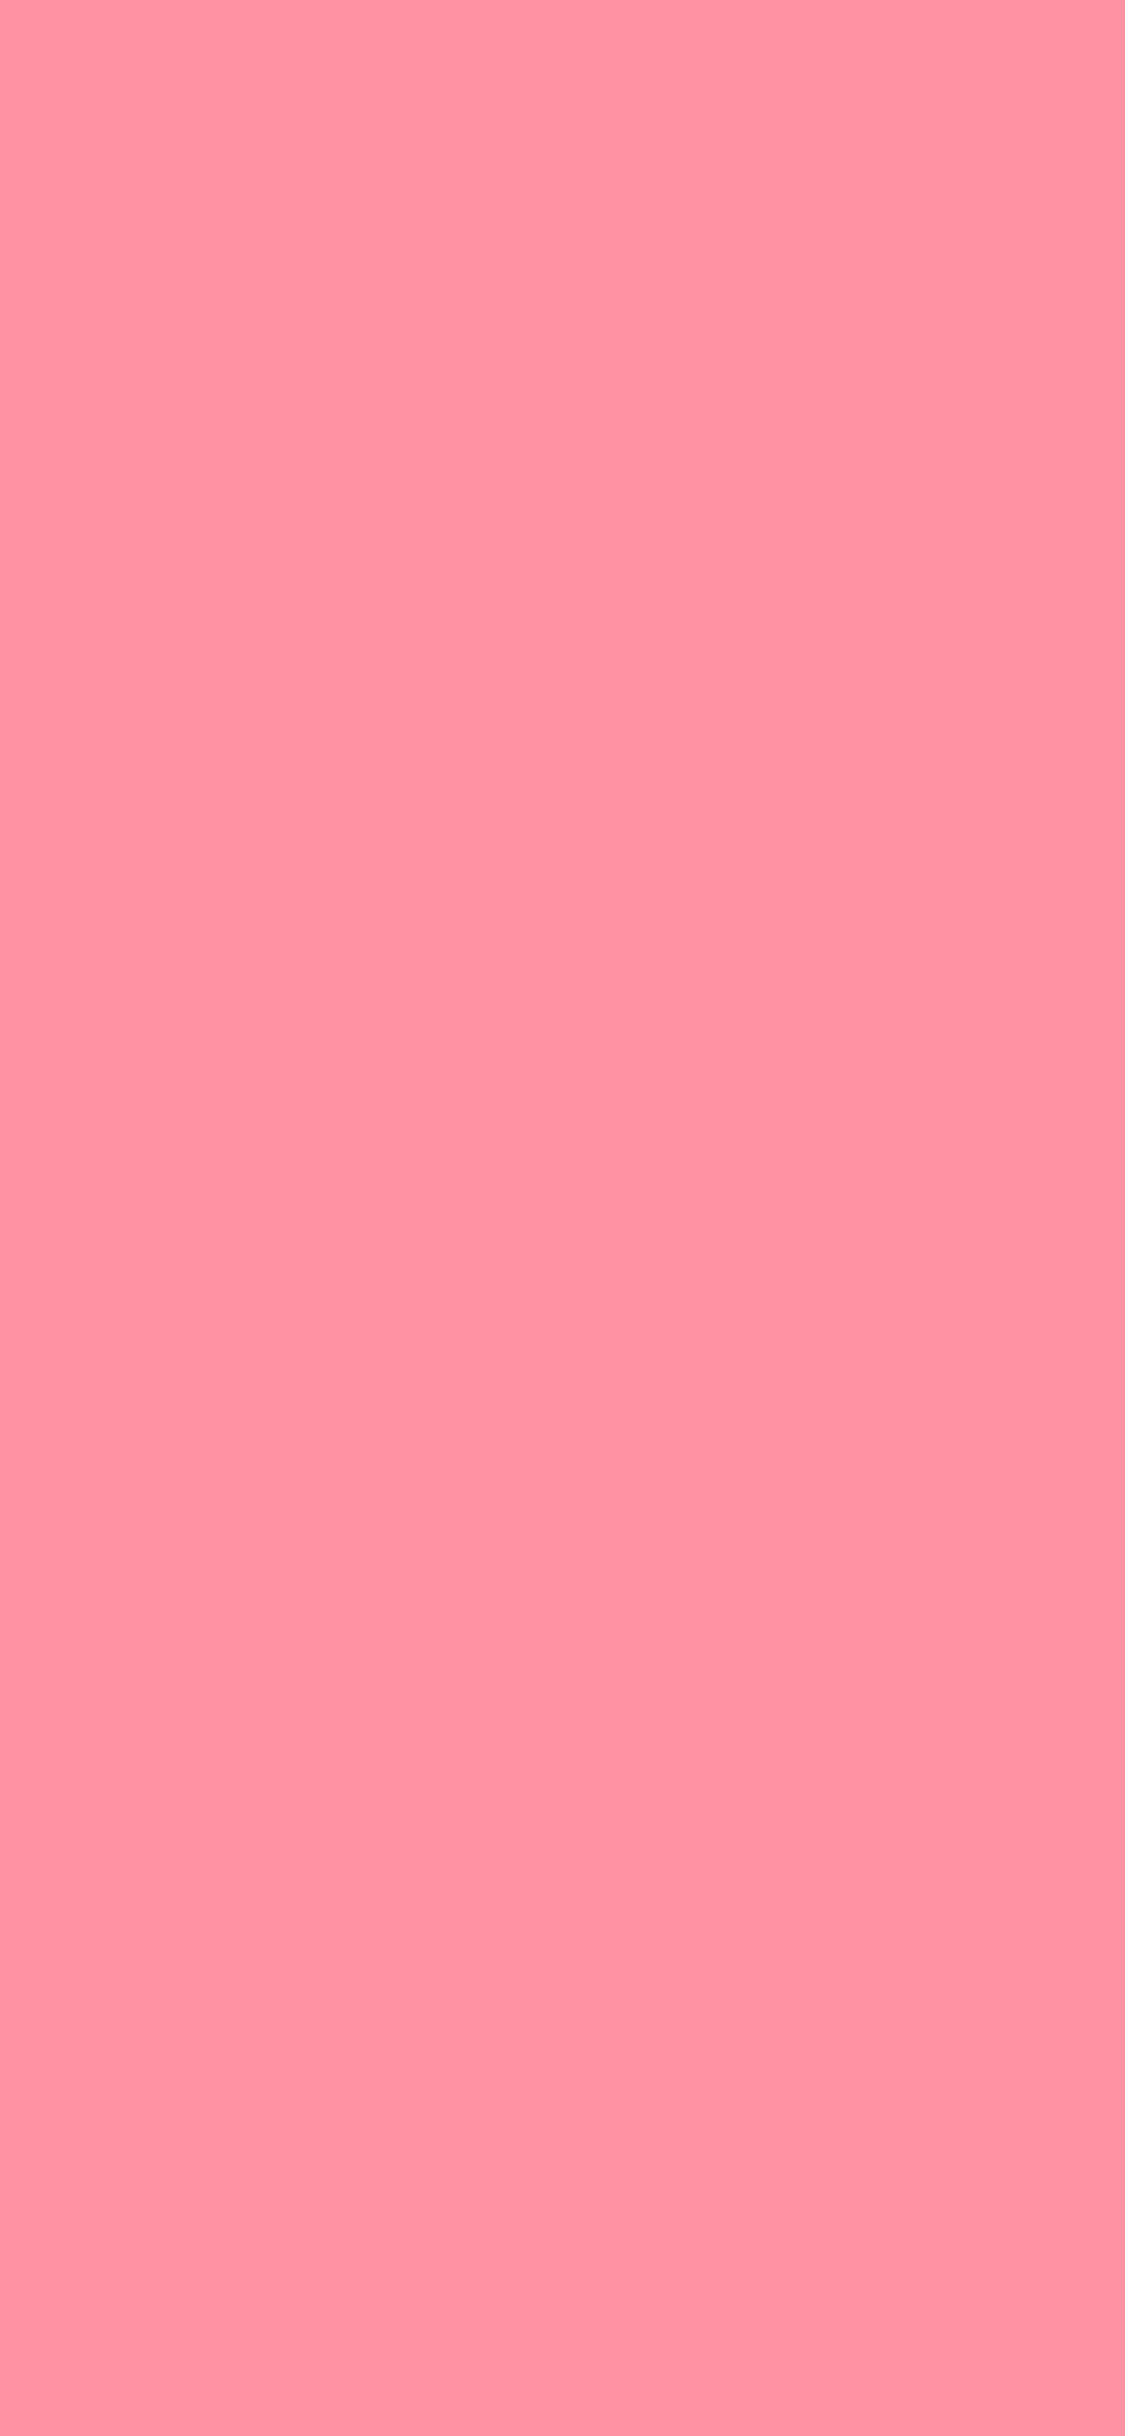 1125x2436 Salmon Pink Solid Color Background